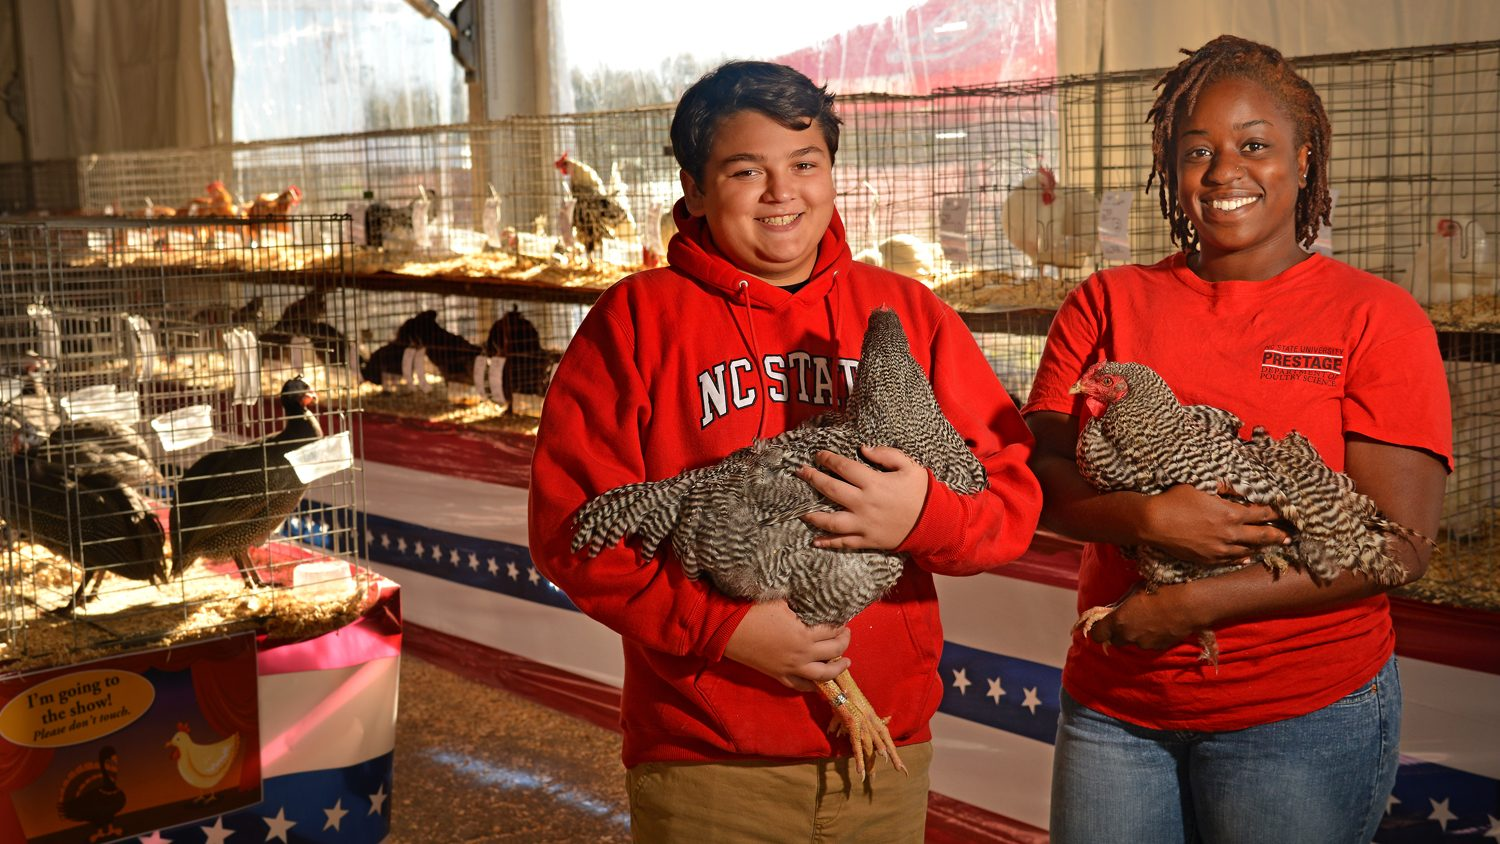 4-H high school student and a Prestage Department of Poultry Science student with chickens at the North Carolina State Fair.